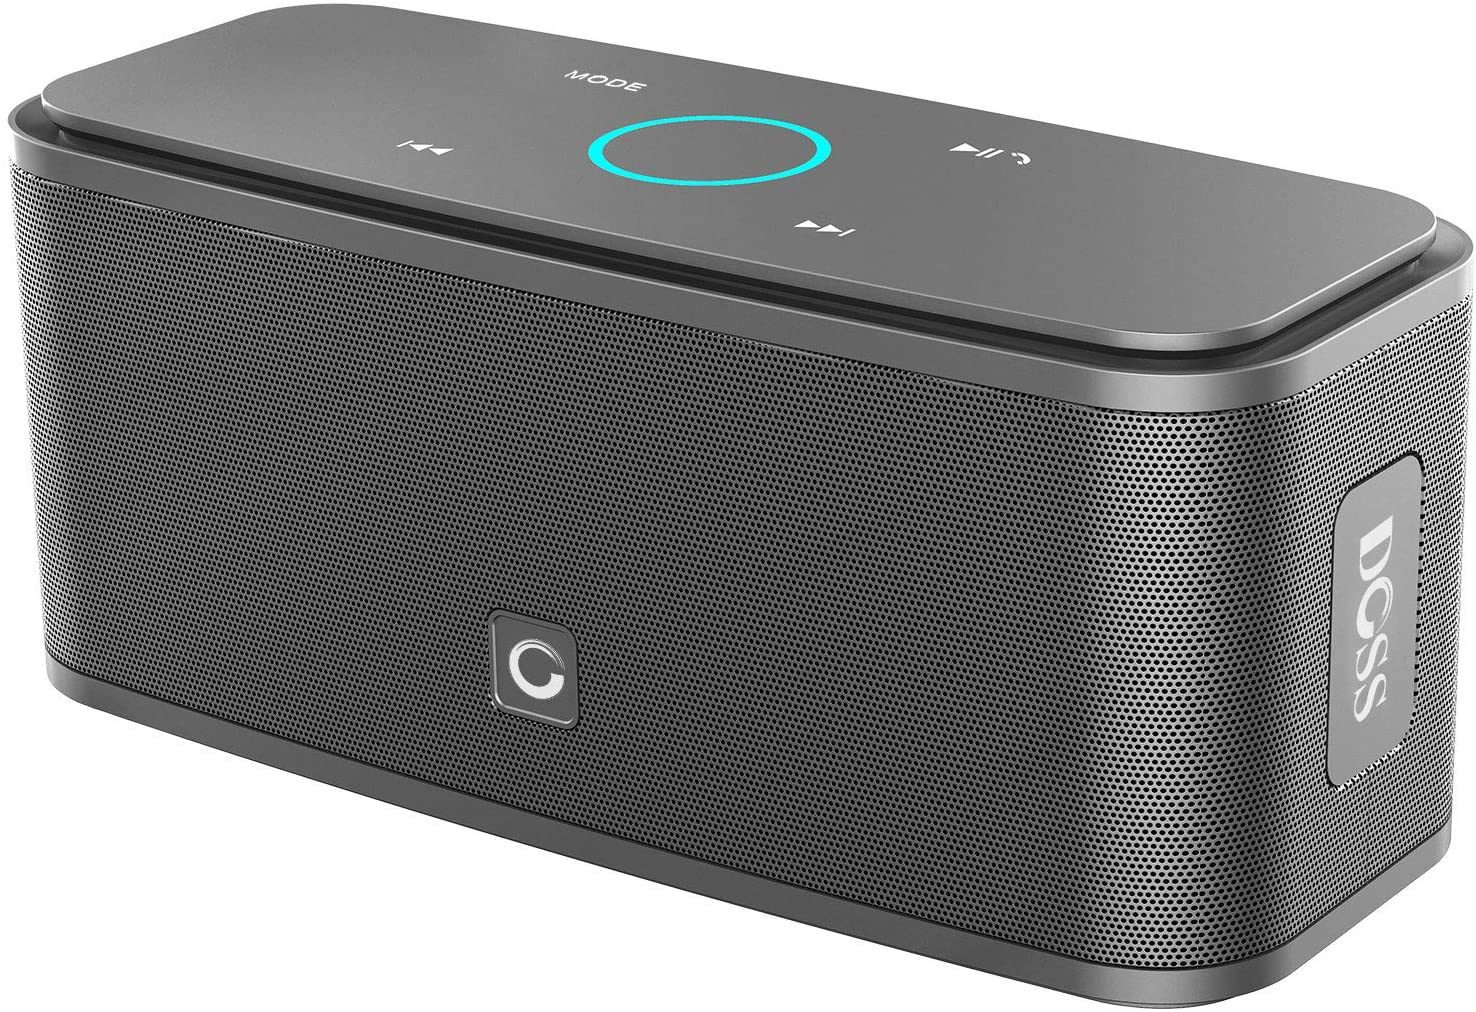 Classier: Buy DOSS DOSS SoundBox Touch Portable Wireless Bluetooth Speakers with 12W HD Sound and Bass, 20H Playtime, Handsfree, Speakers for Home, Outdoor, Travel-Black